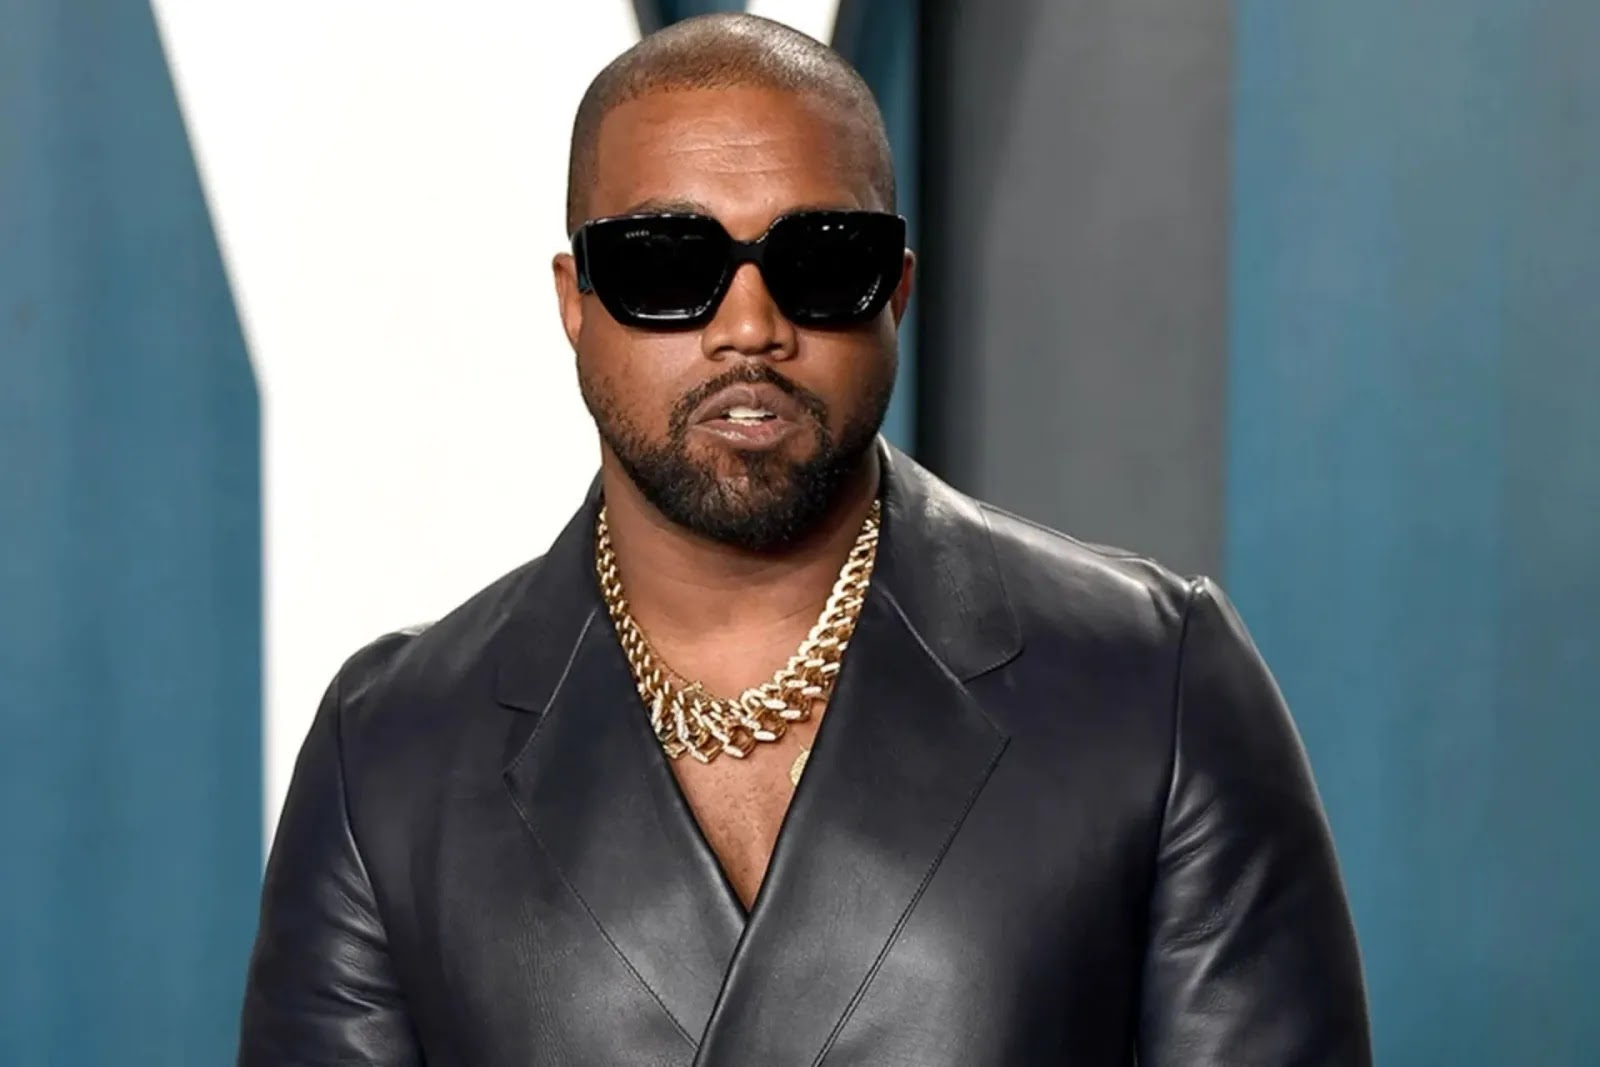 The Top 10 Richest Musicians in the World 2020 Ranking